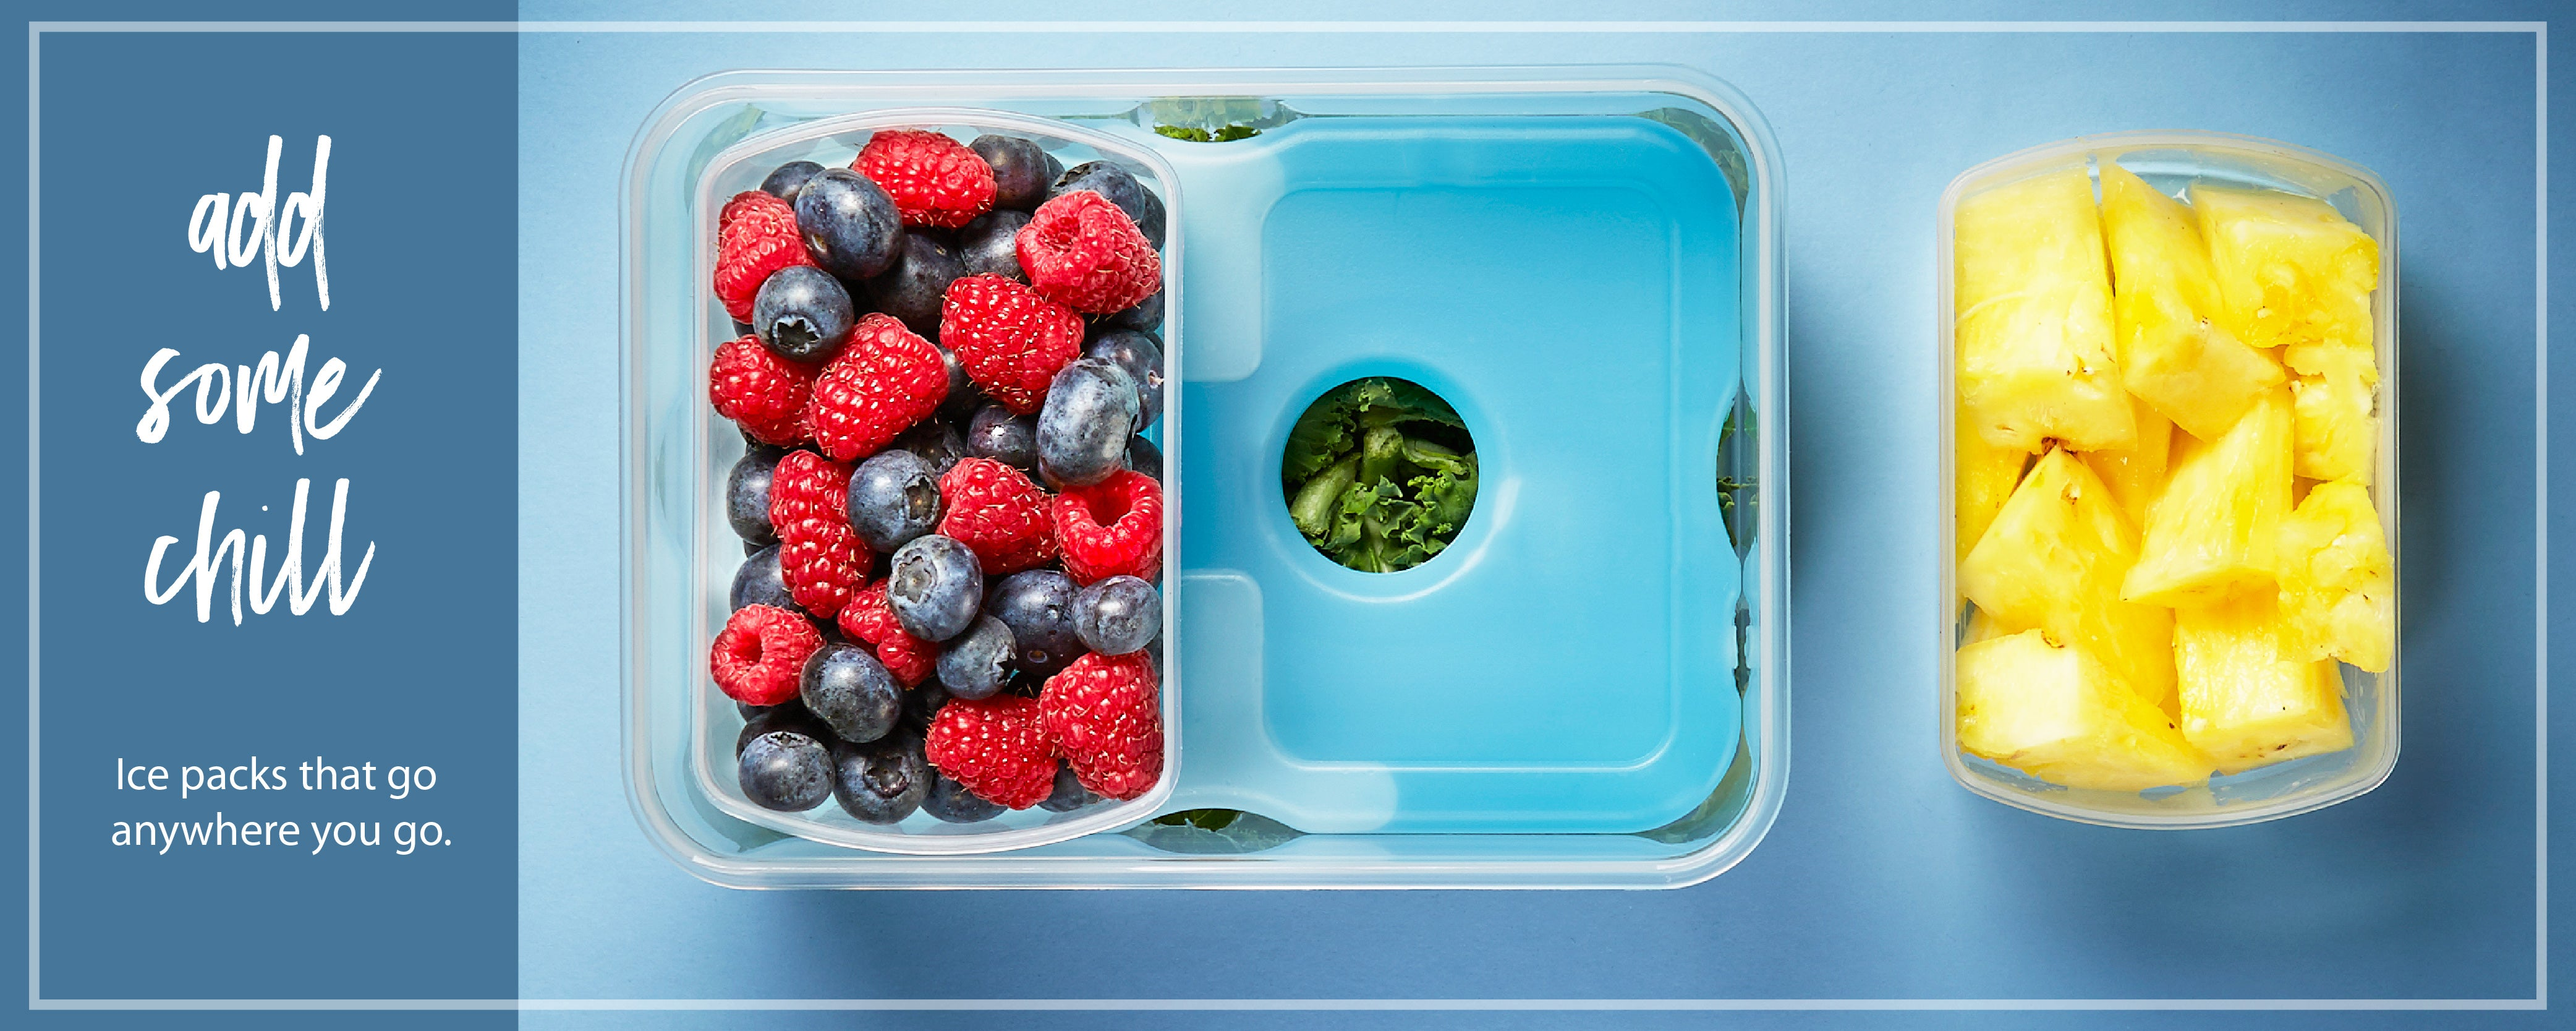 Fit & Fresh - Ice Packs for Lunch Boxes, Coolers, Beach Bags & More